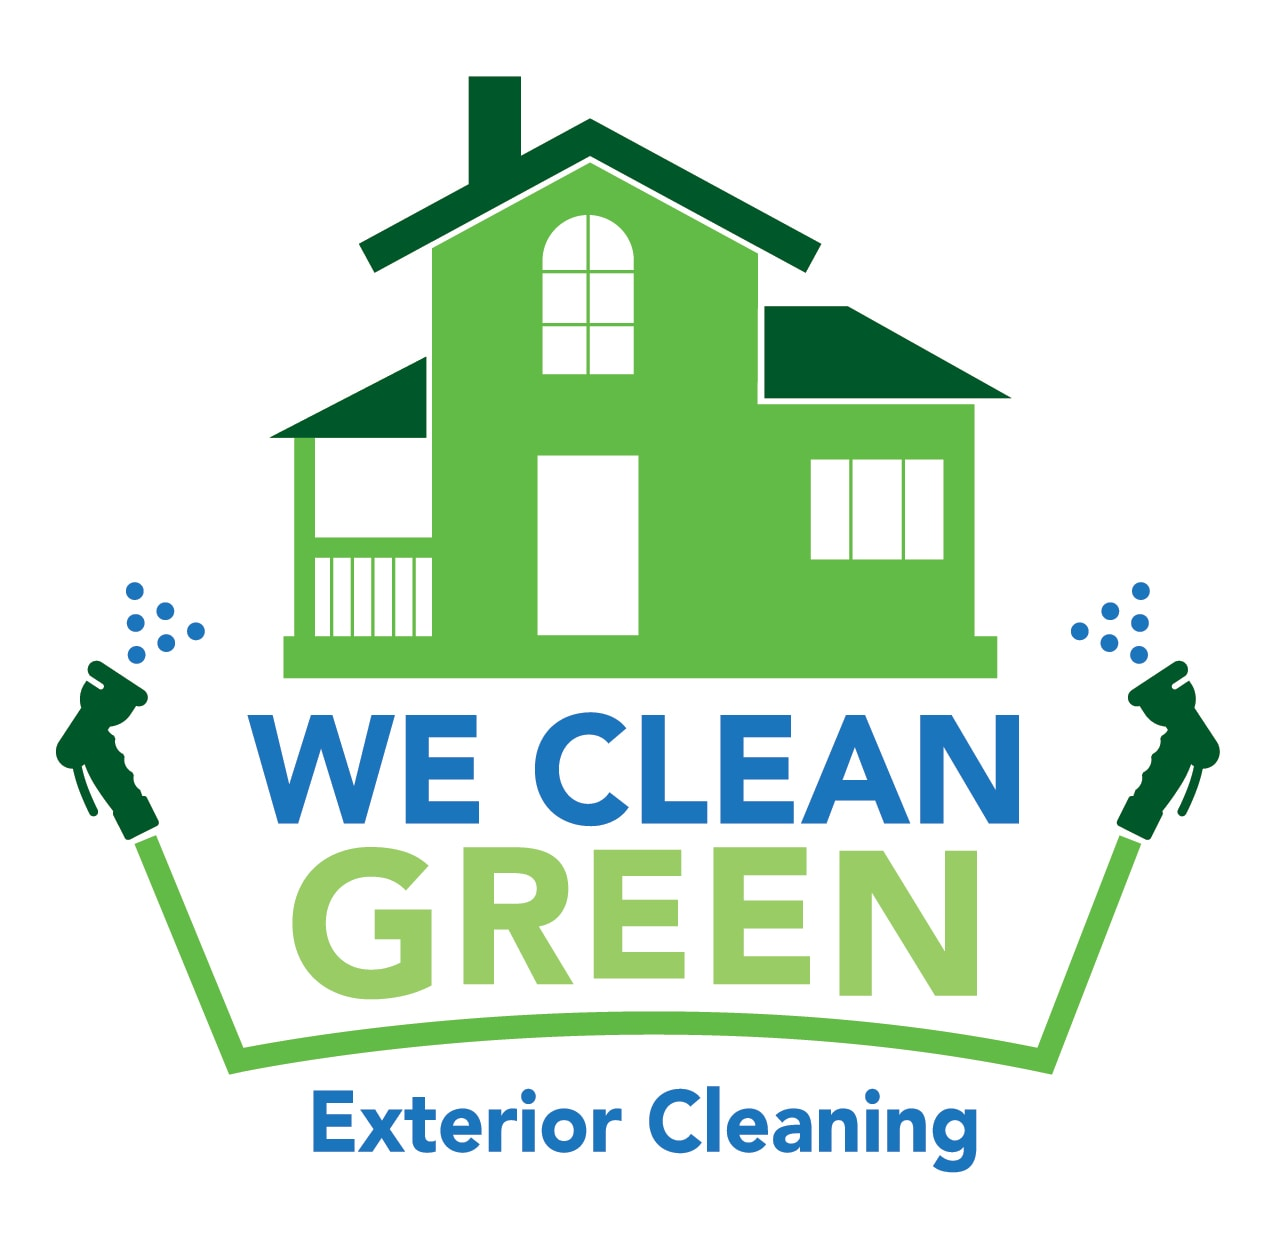 We Clean Green Exterior Cleaning